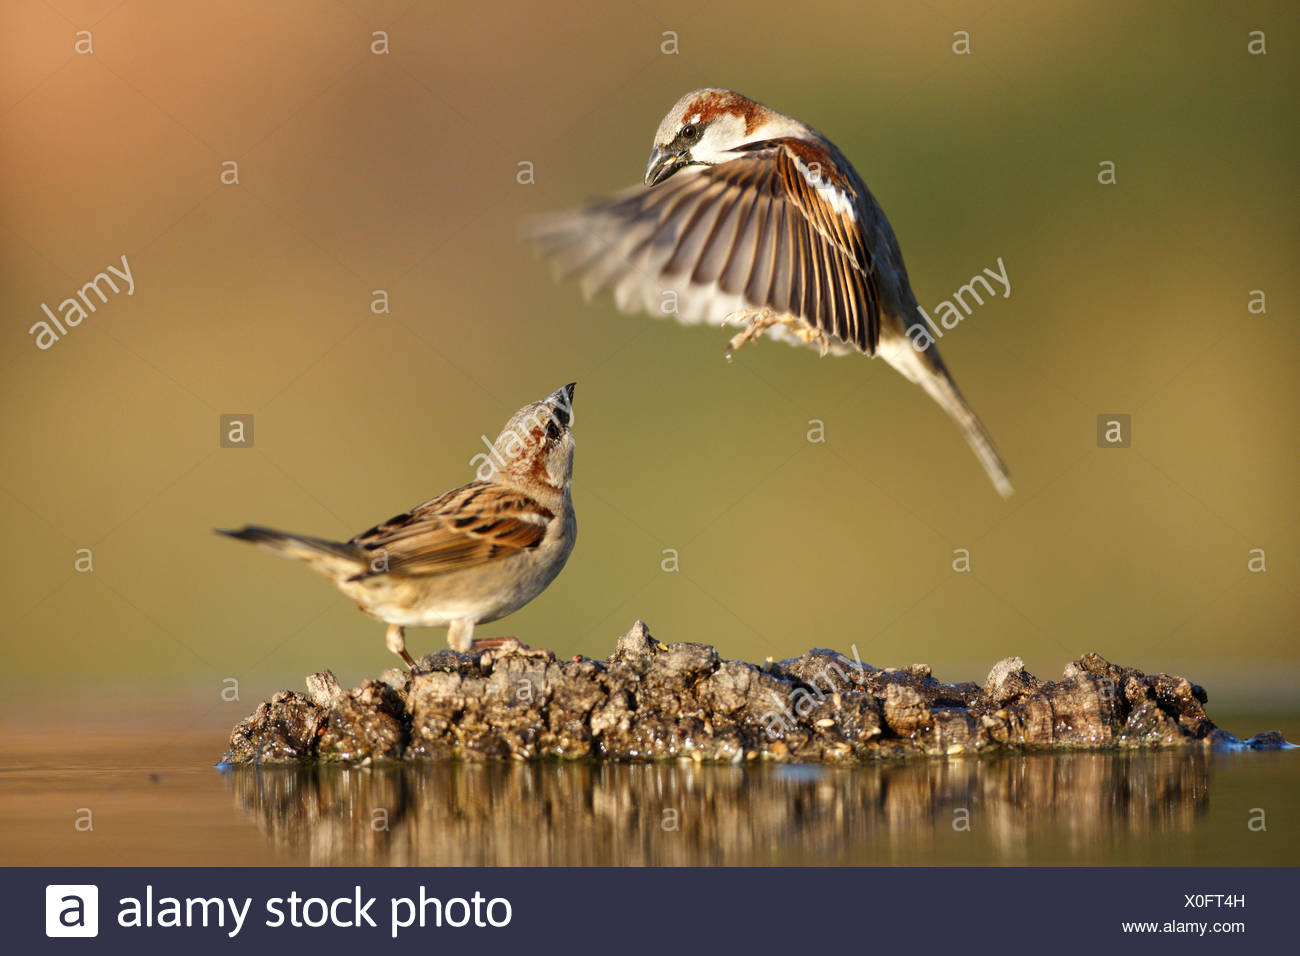 Common sparrow (Passer domesticus) landing next to another sparrow near water, Alicante, Spain Stock Photo